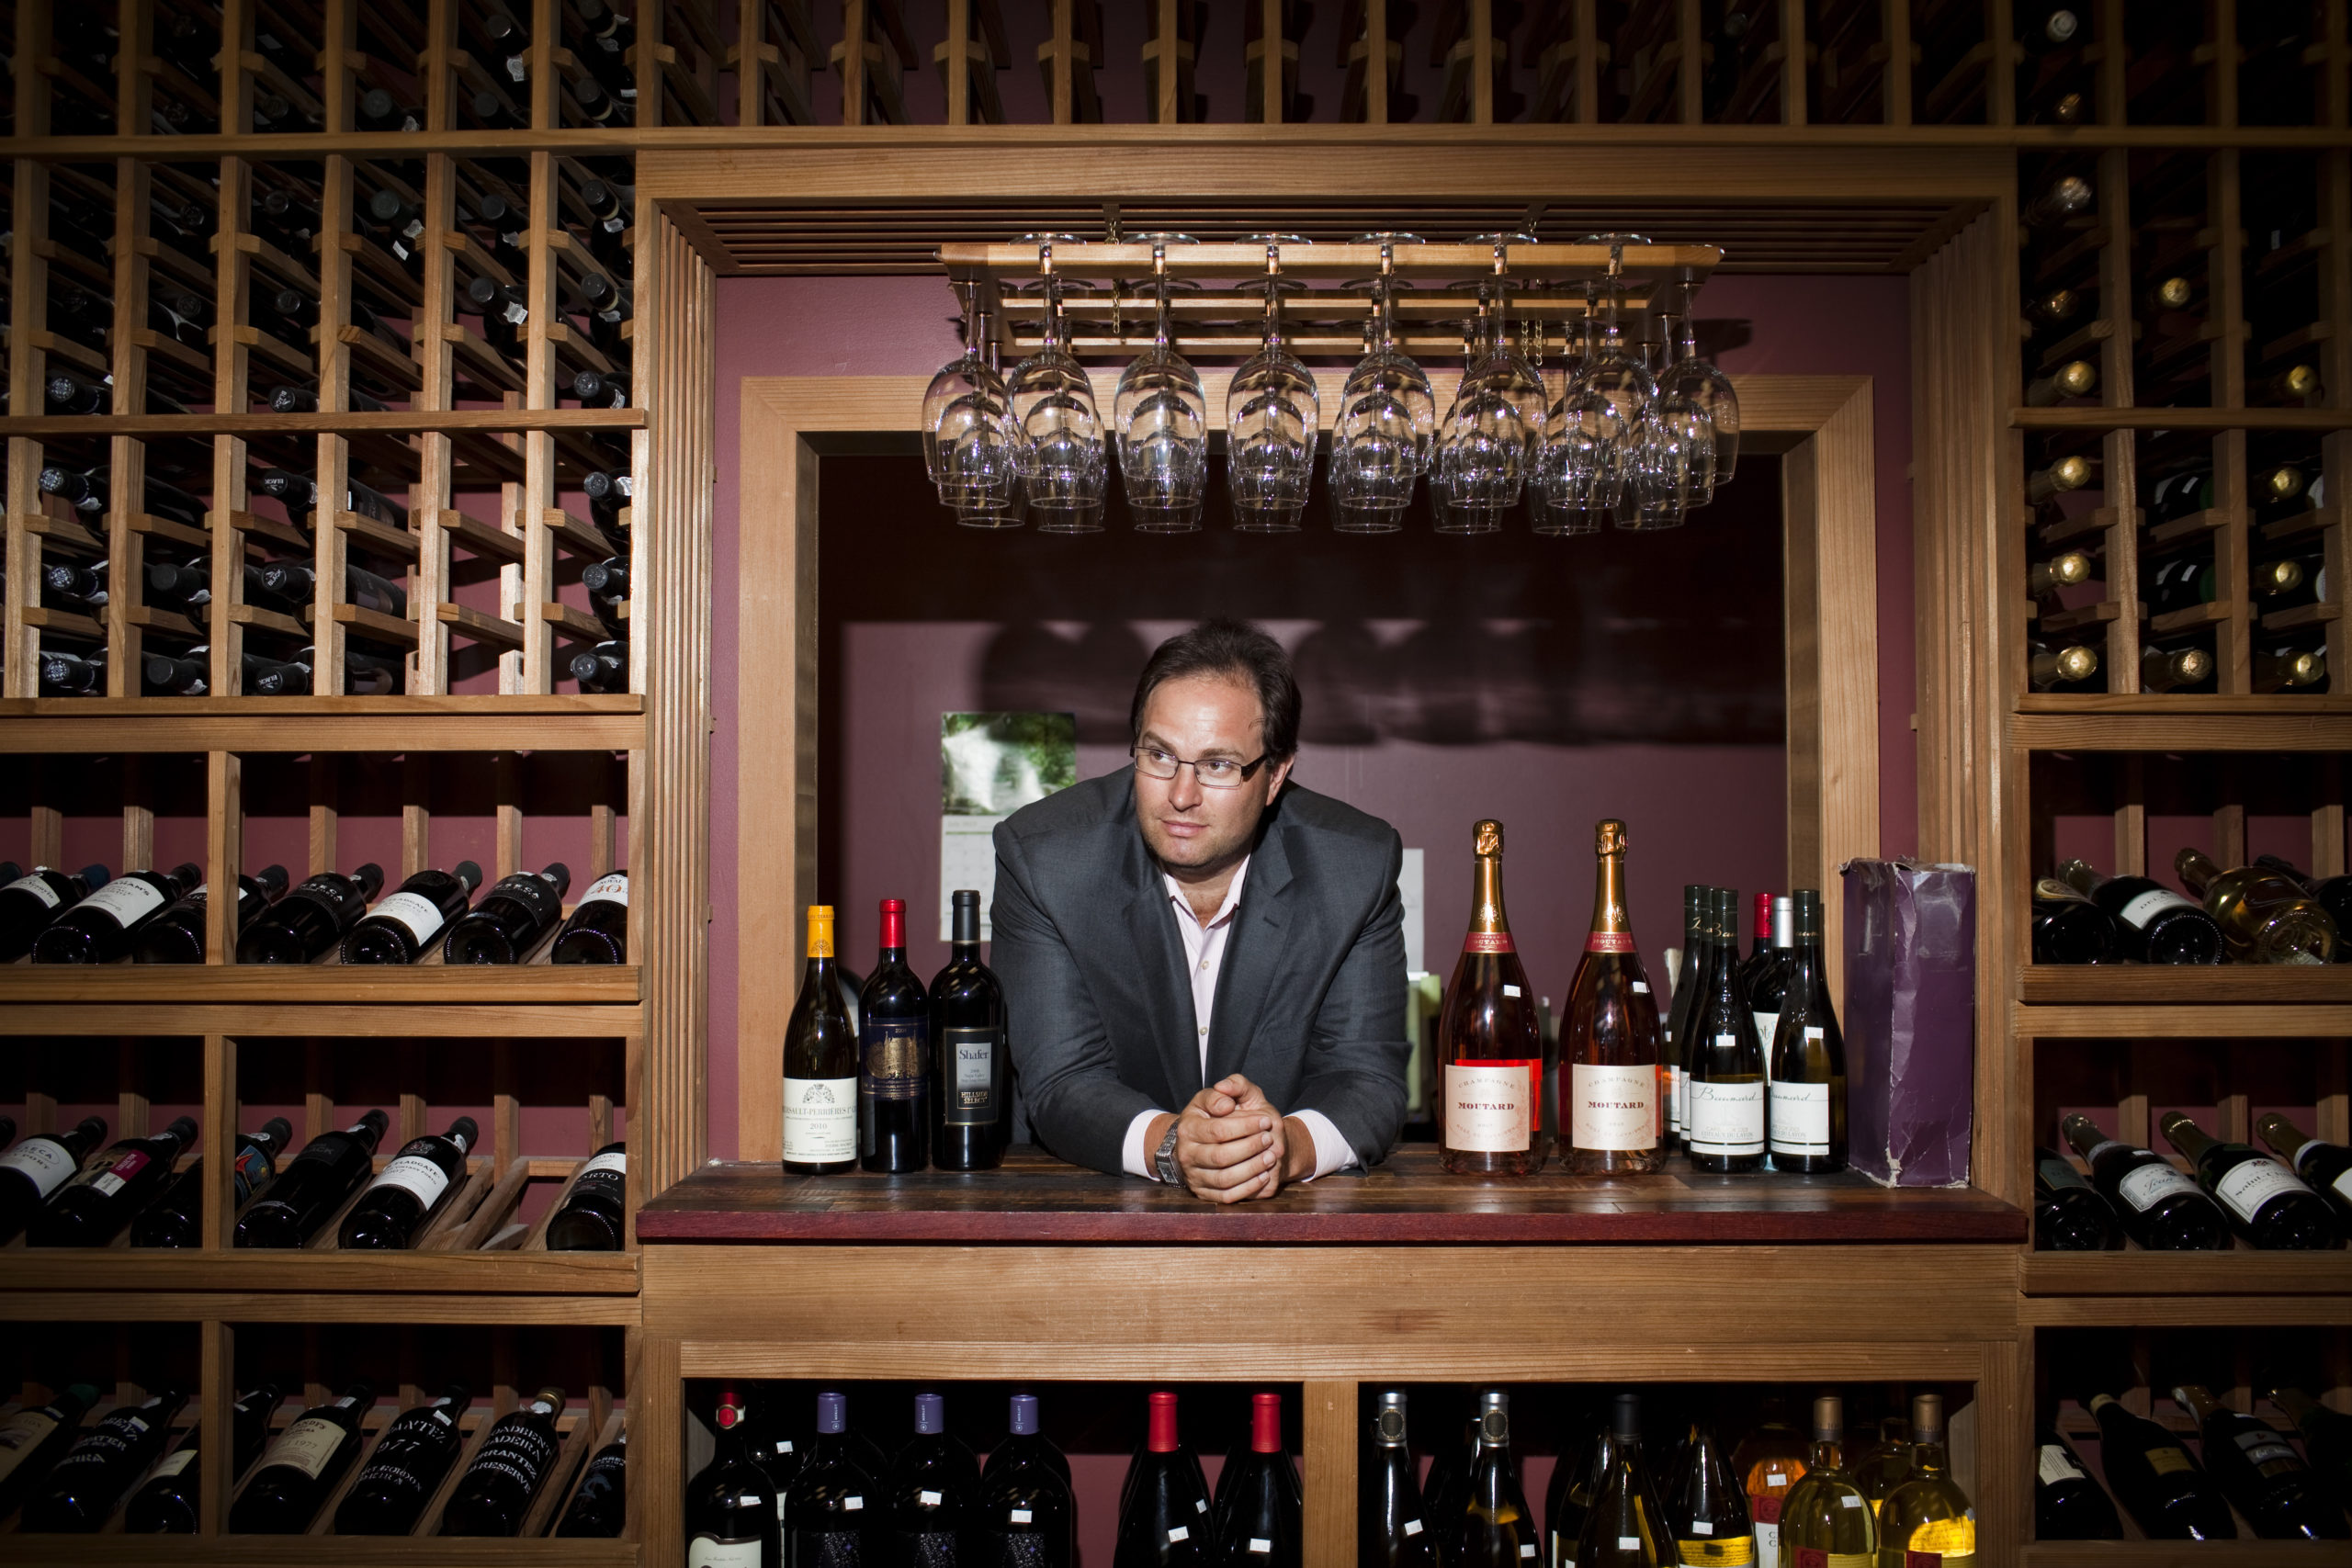 A selection of French wines the could get hit with tariffs. COURTESY DANIEL POSNER